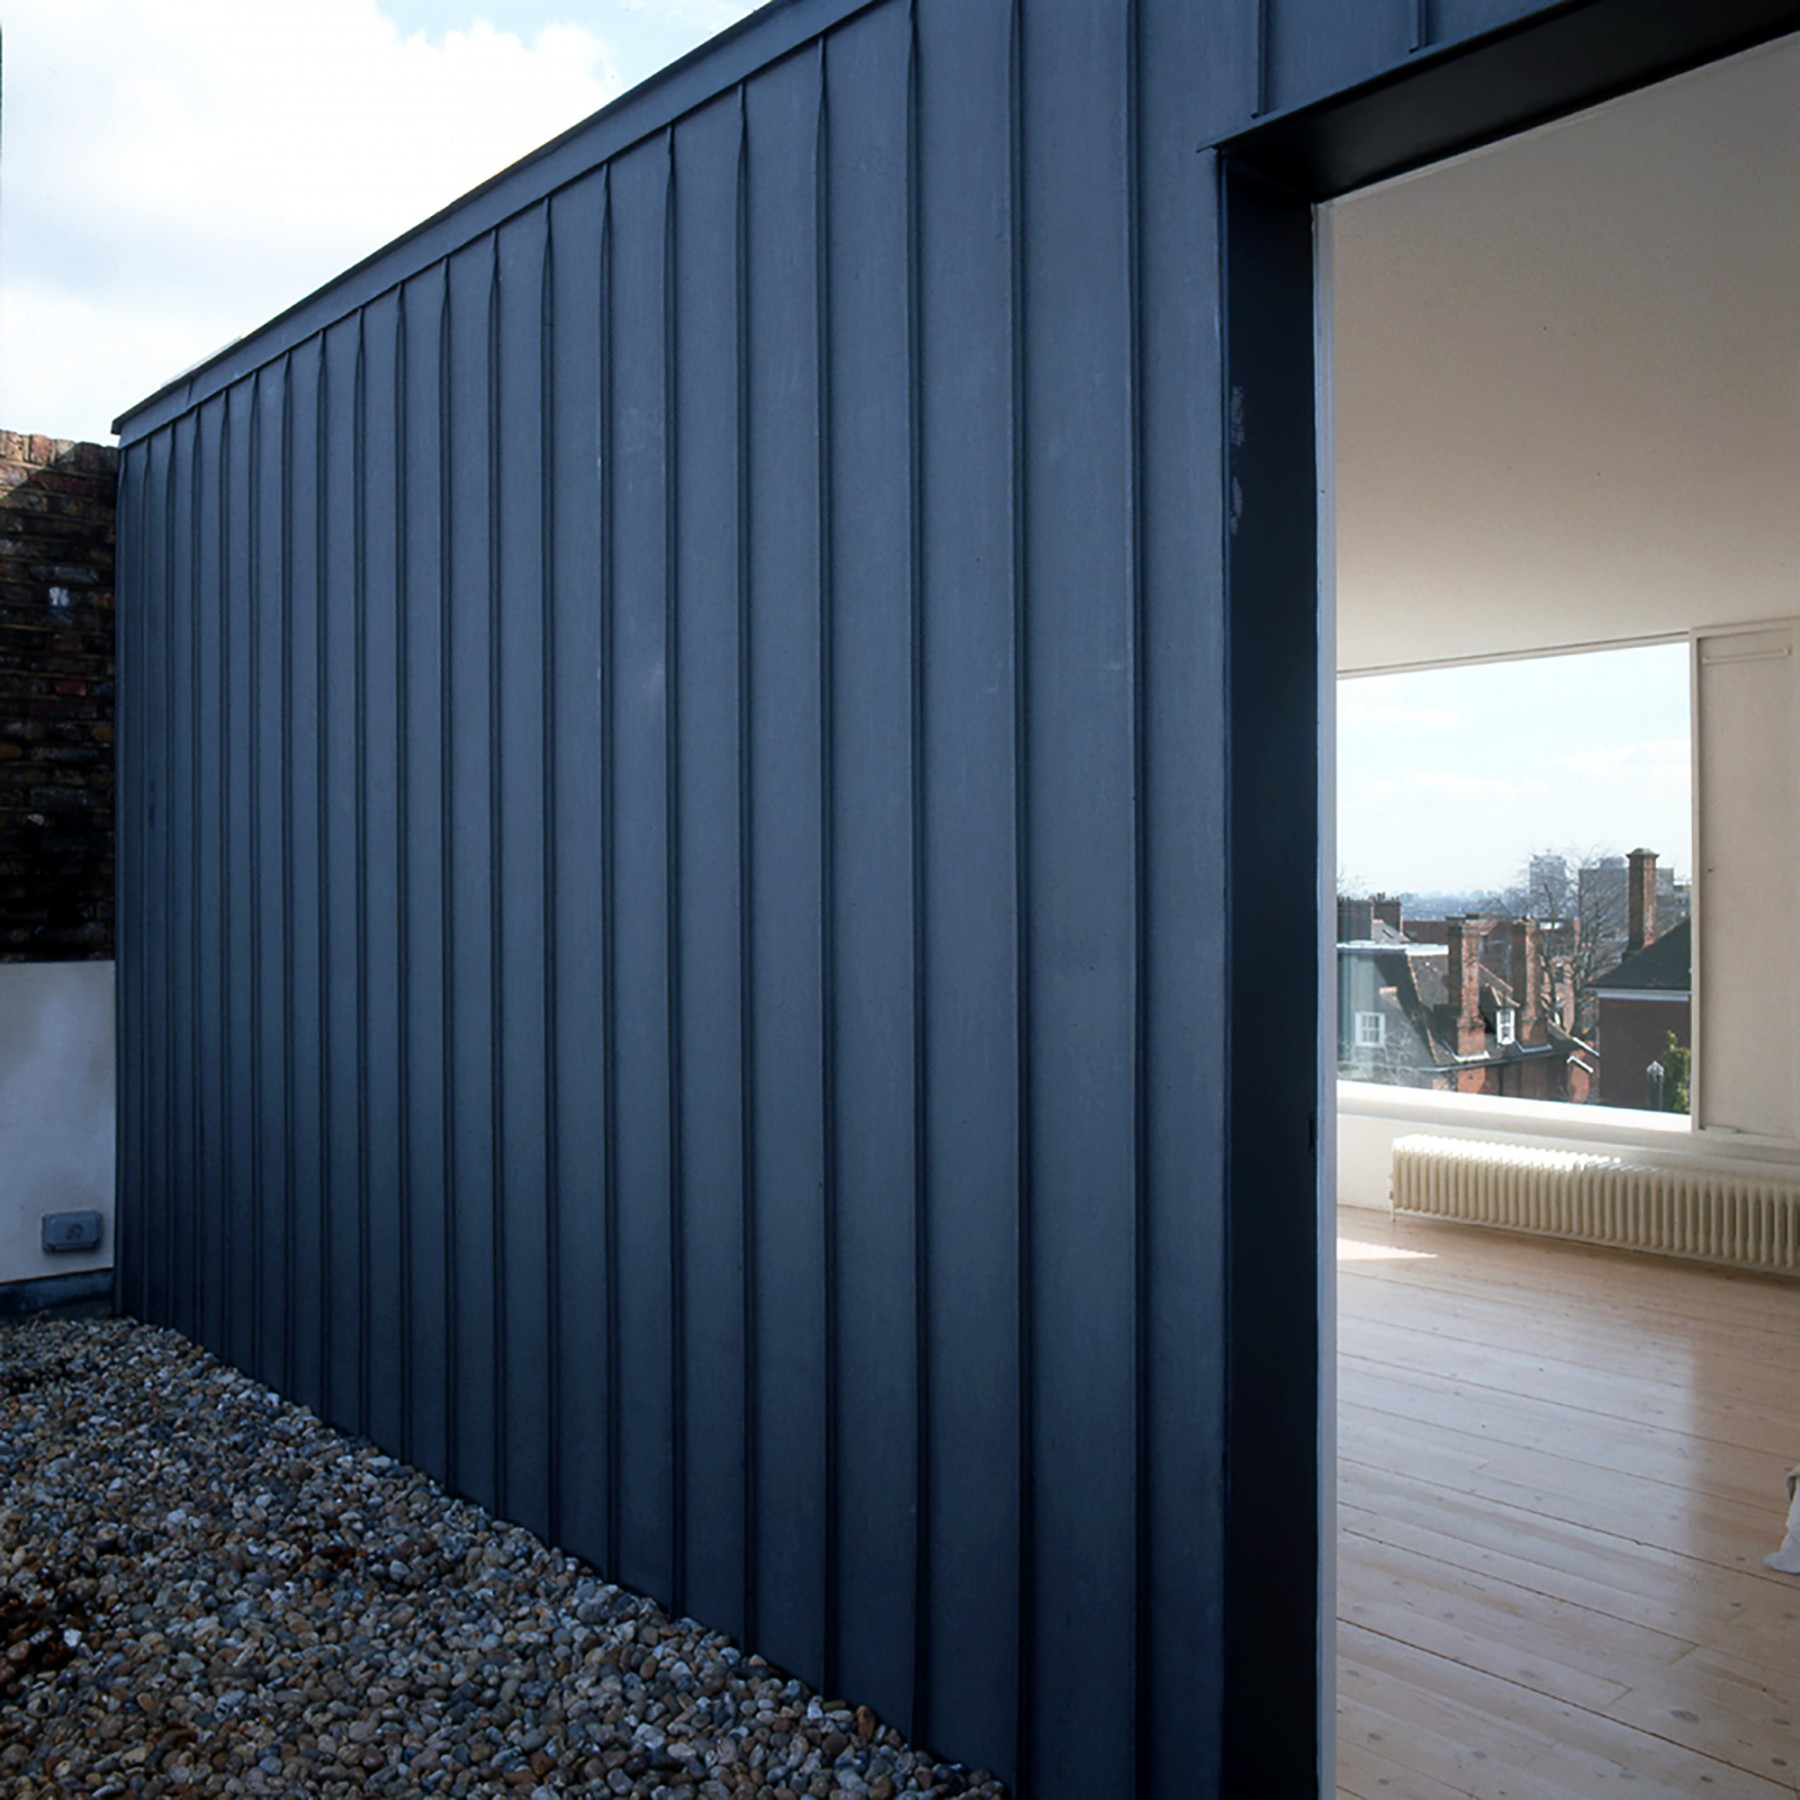 Jamie-Fobert-Architects-Grosz-House-Downshire-Hill-Roof-Terrace